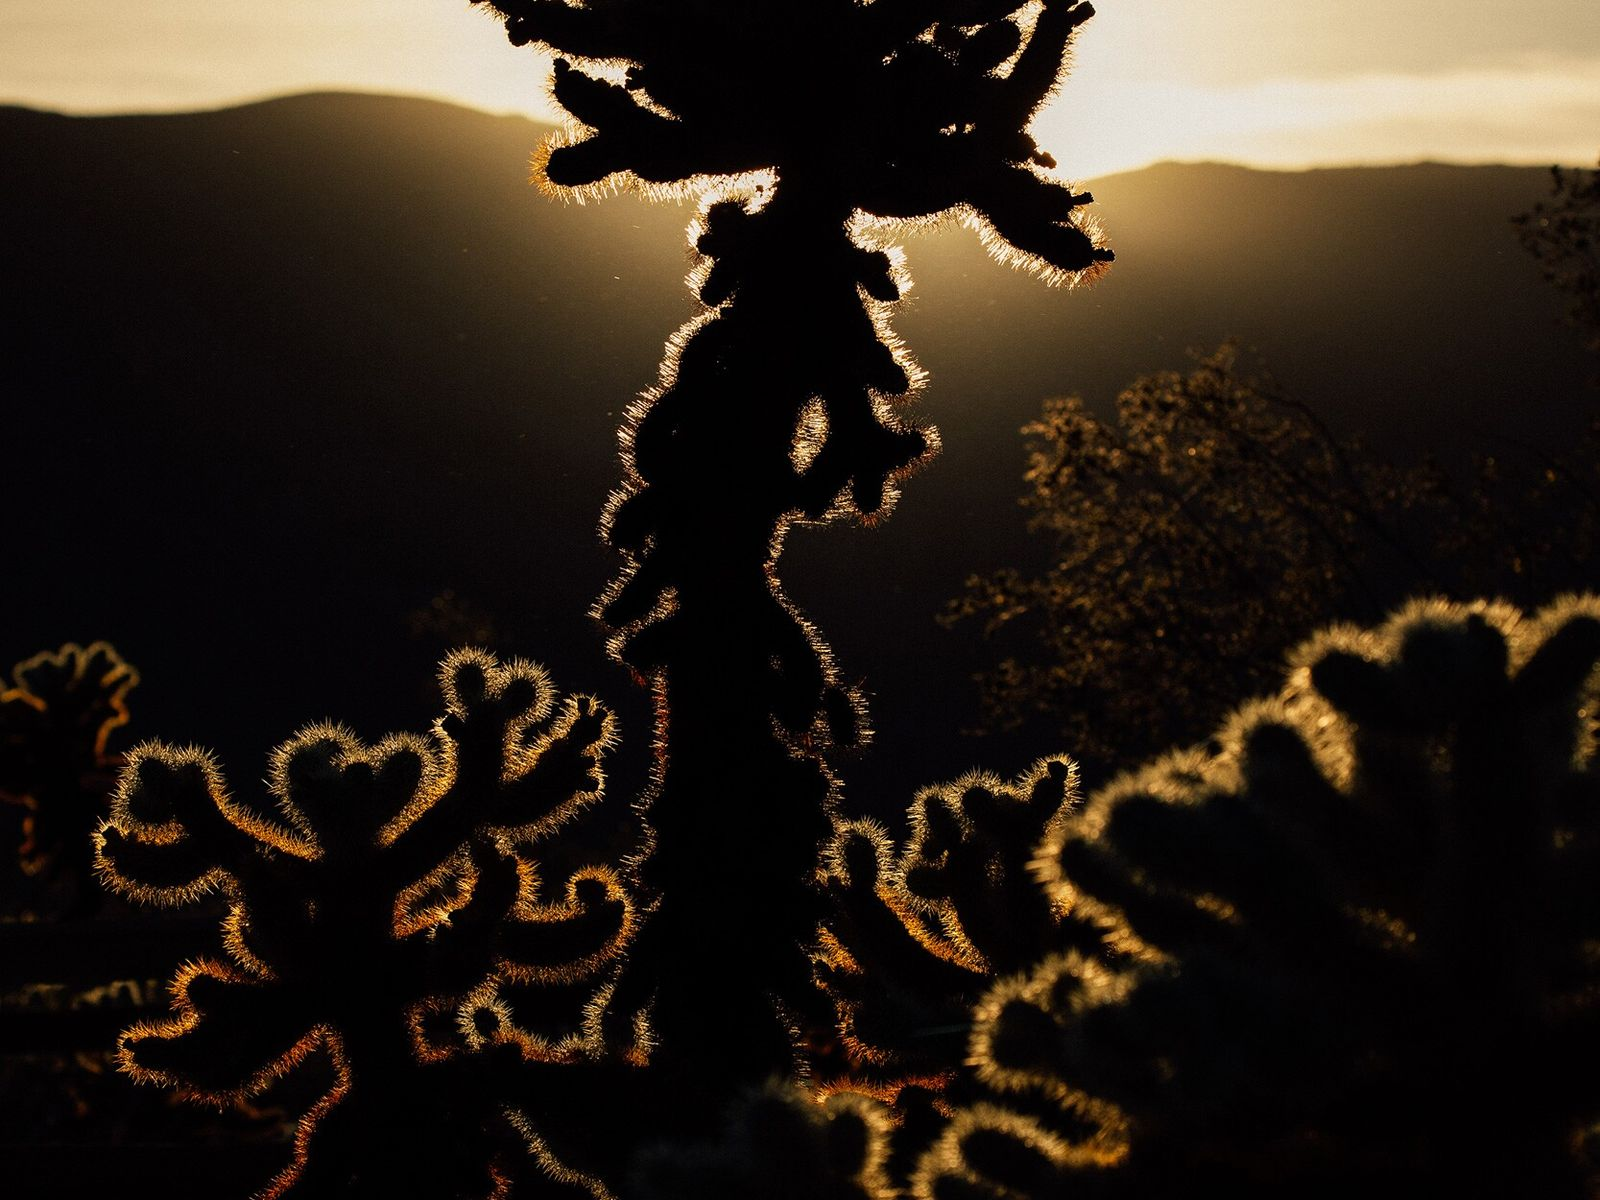 A cholla cactus in Joshua Tree National Park, California. Supporting the responsible use of public lands ...